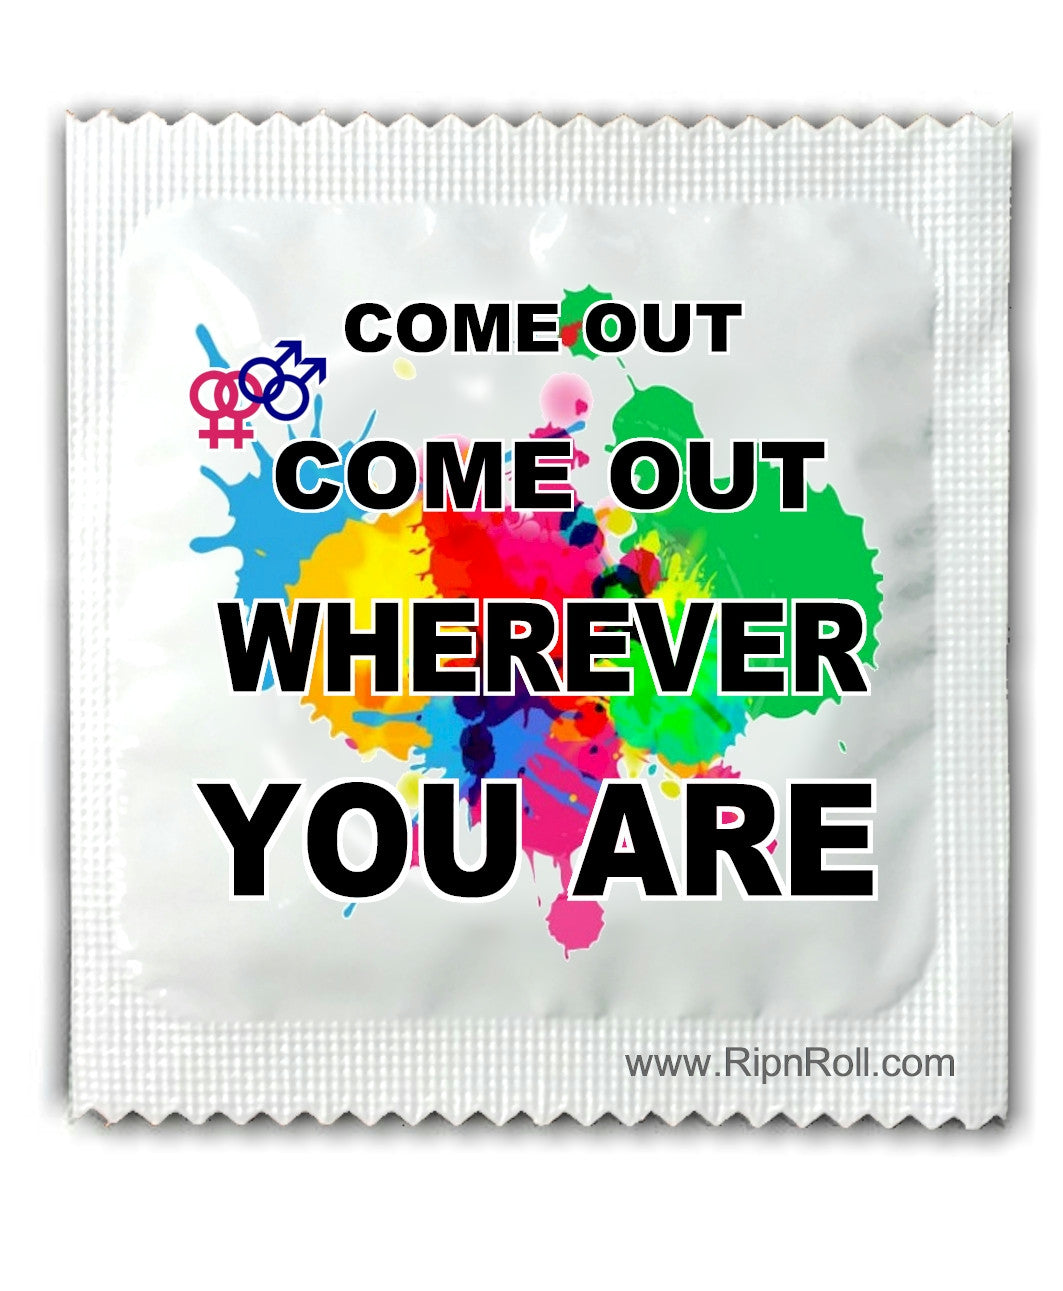 from Peter kimono condom for gays